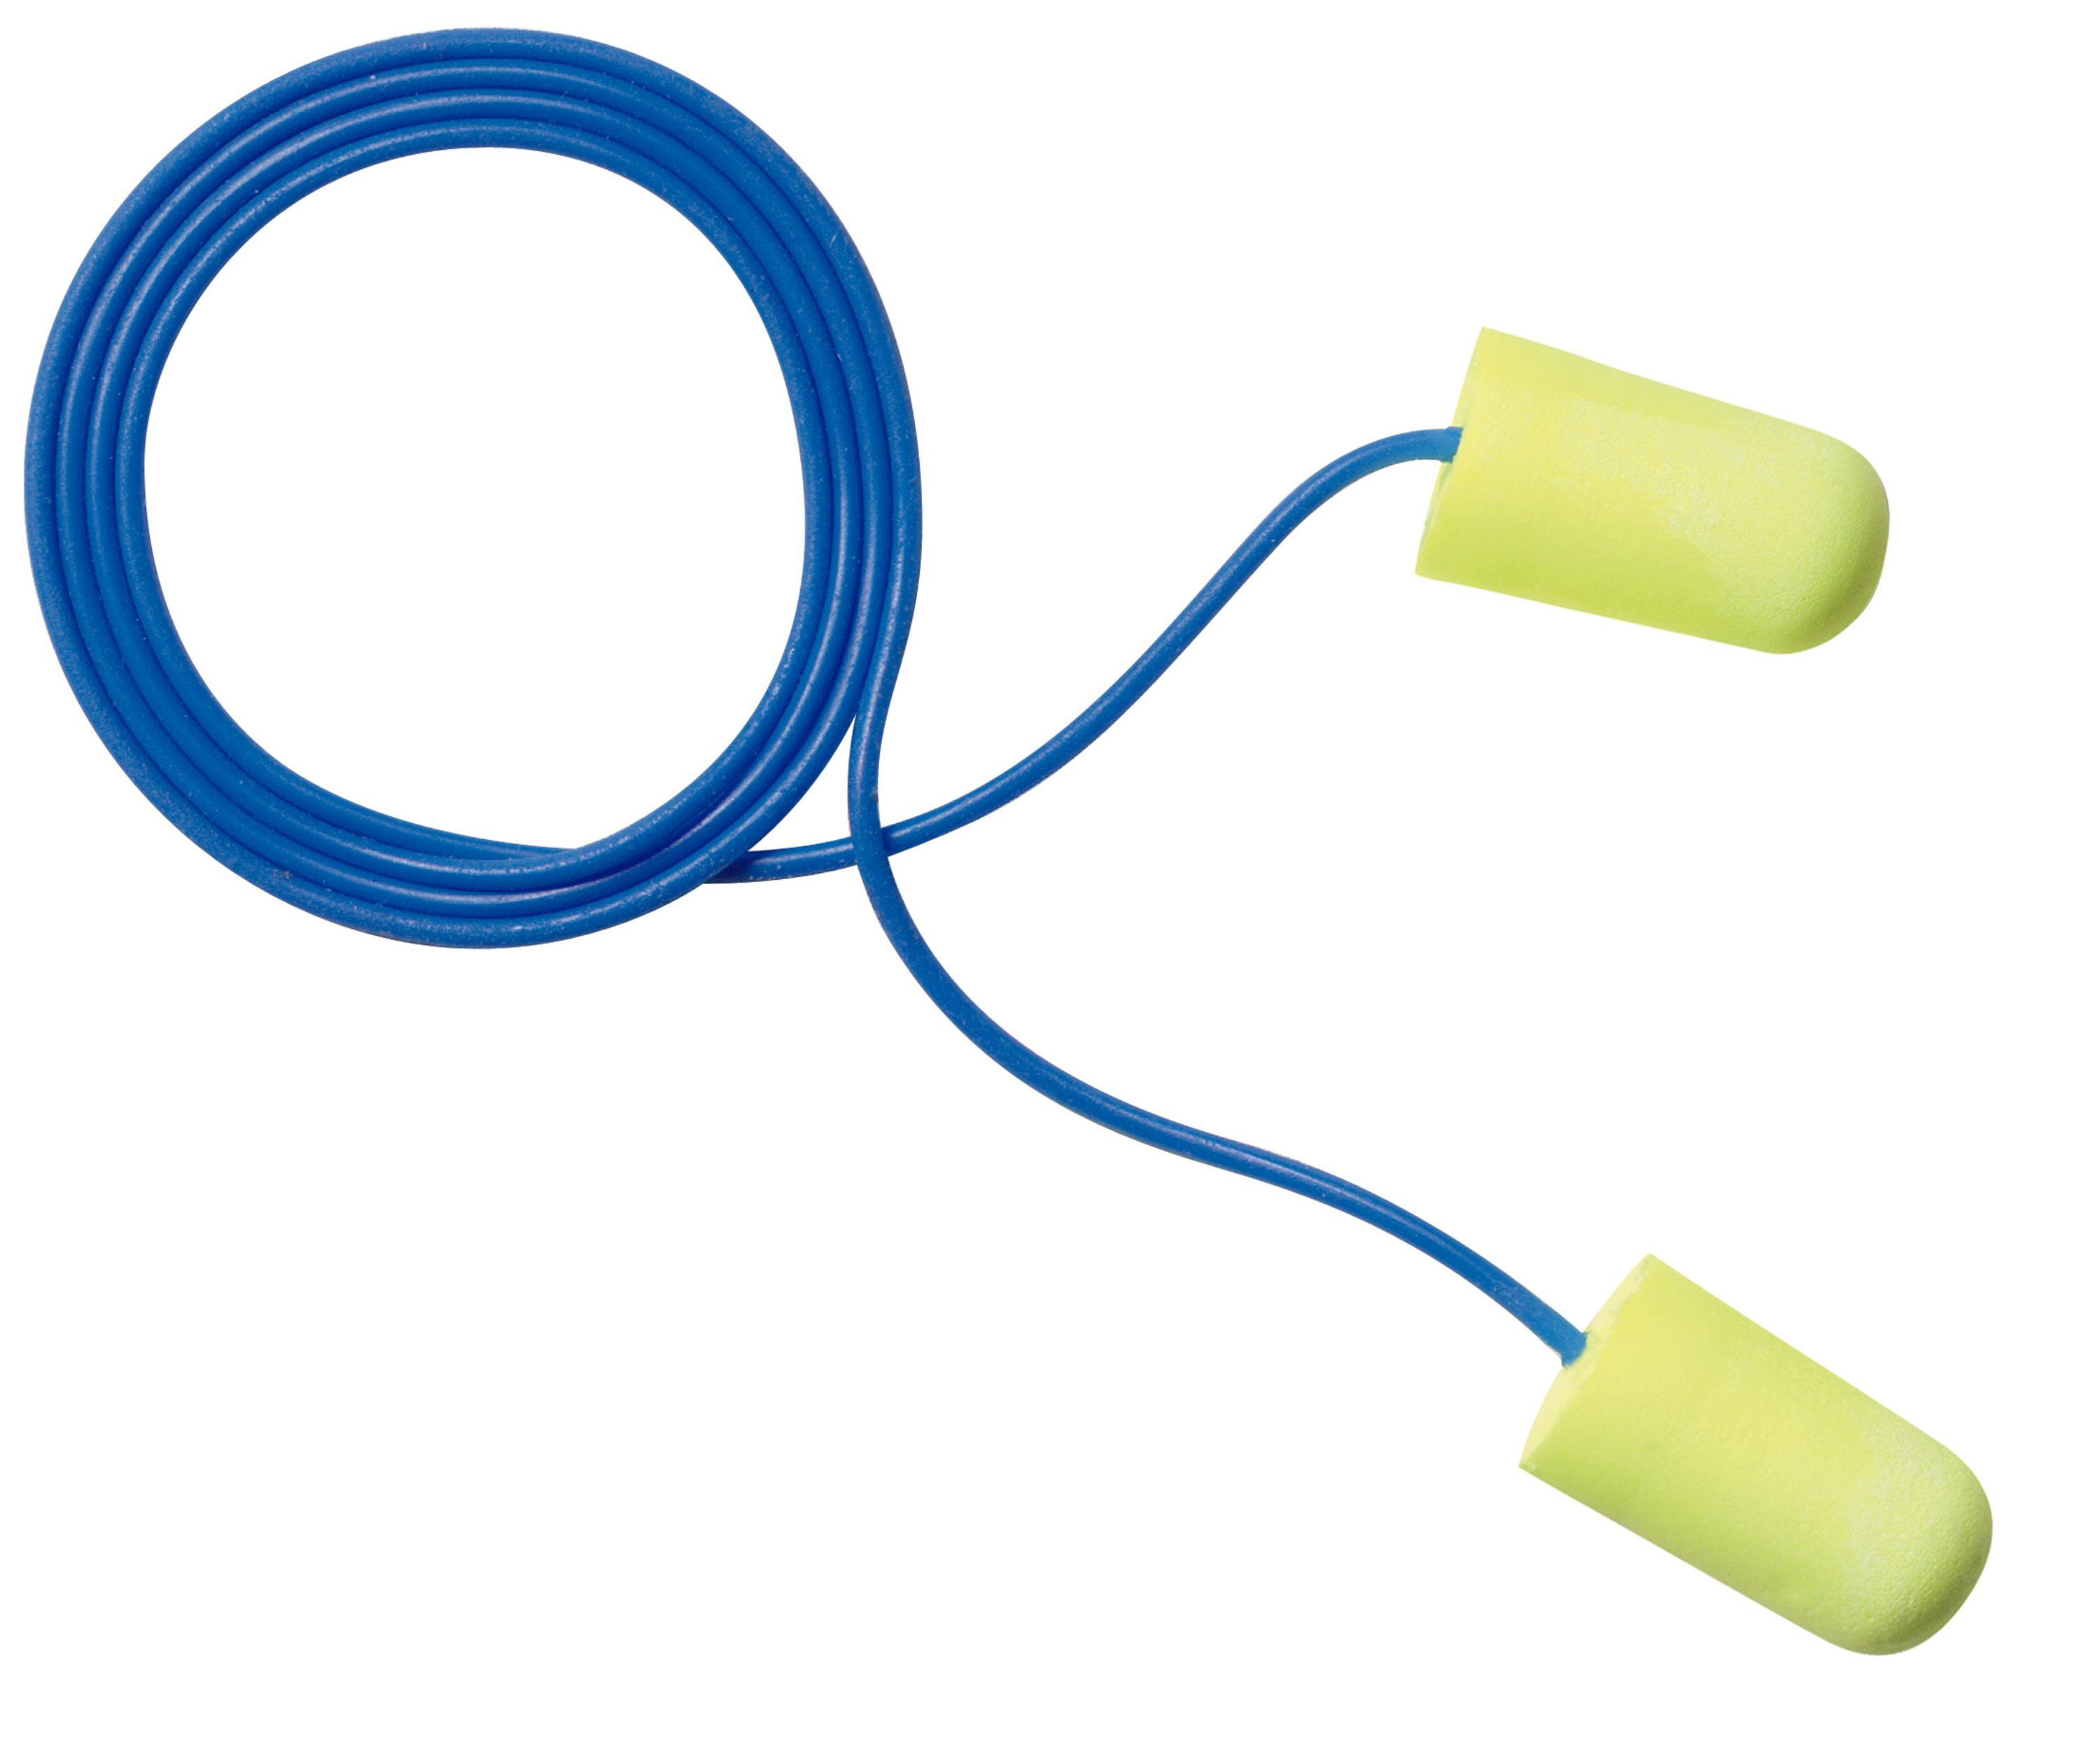 E-A-R™ E-A-Rsoft™ 080529-11034 Neons™ Earplugs, 33 dB Noise Reduction, Tapered, Specifications Met: CSA Class AL, Disposable, Corded Design